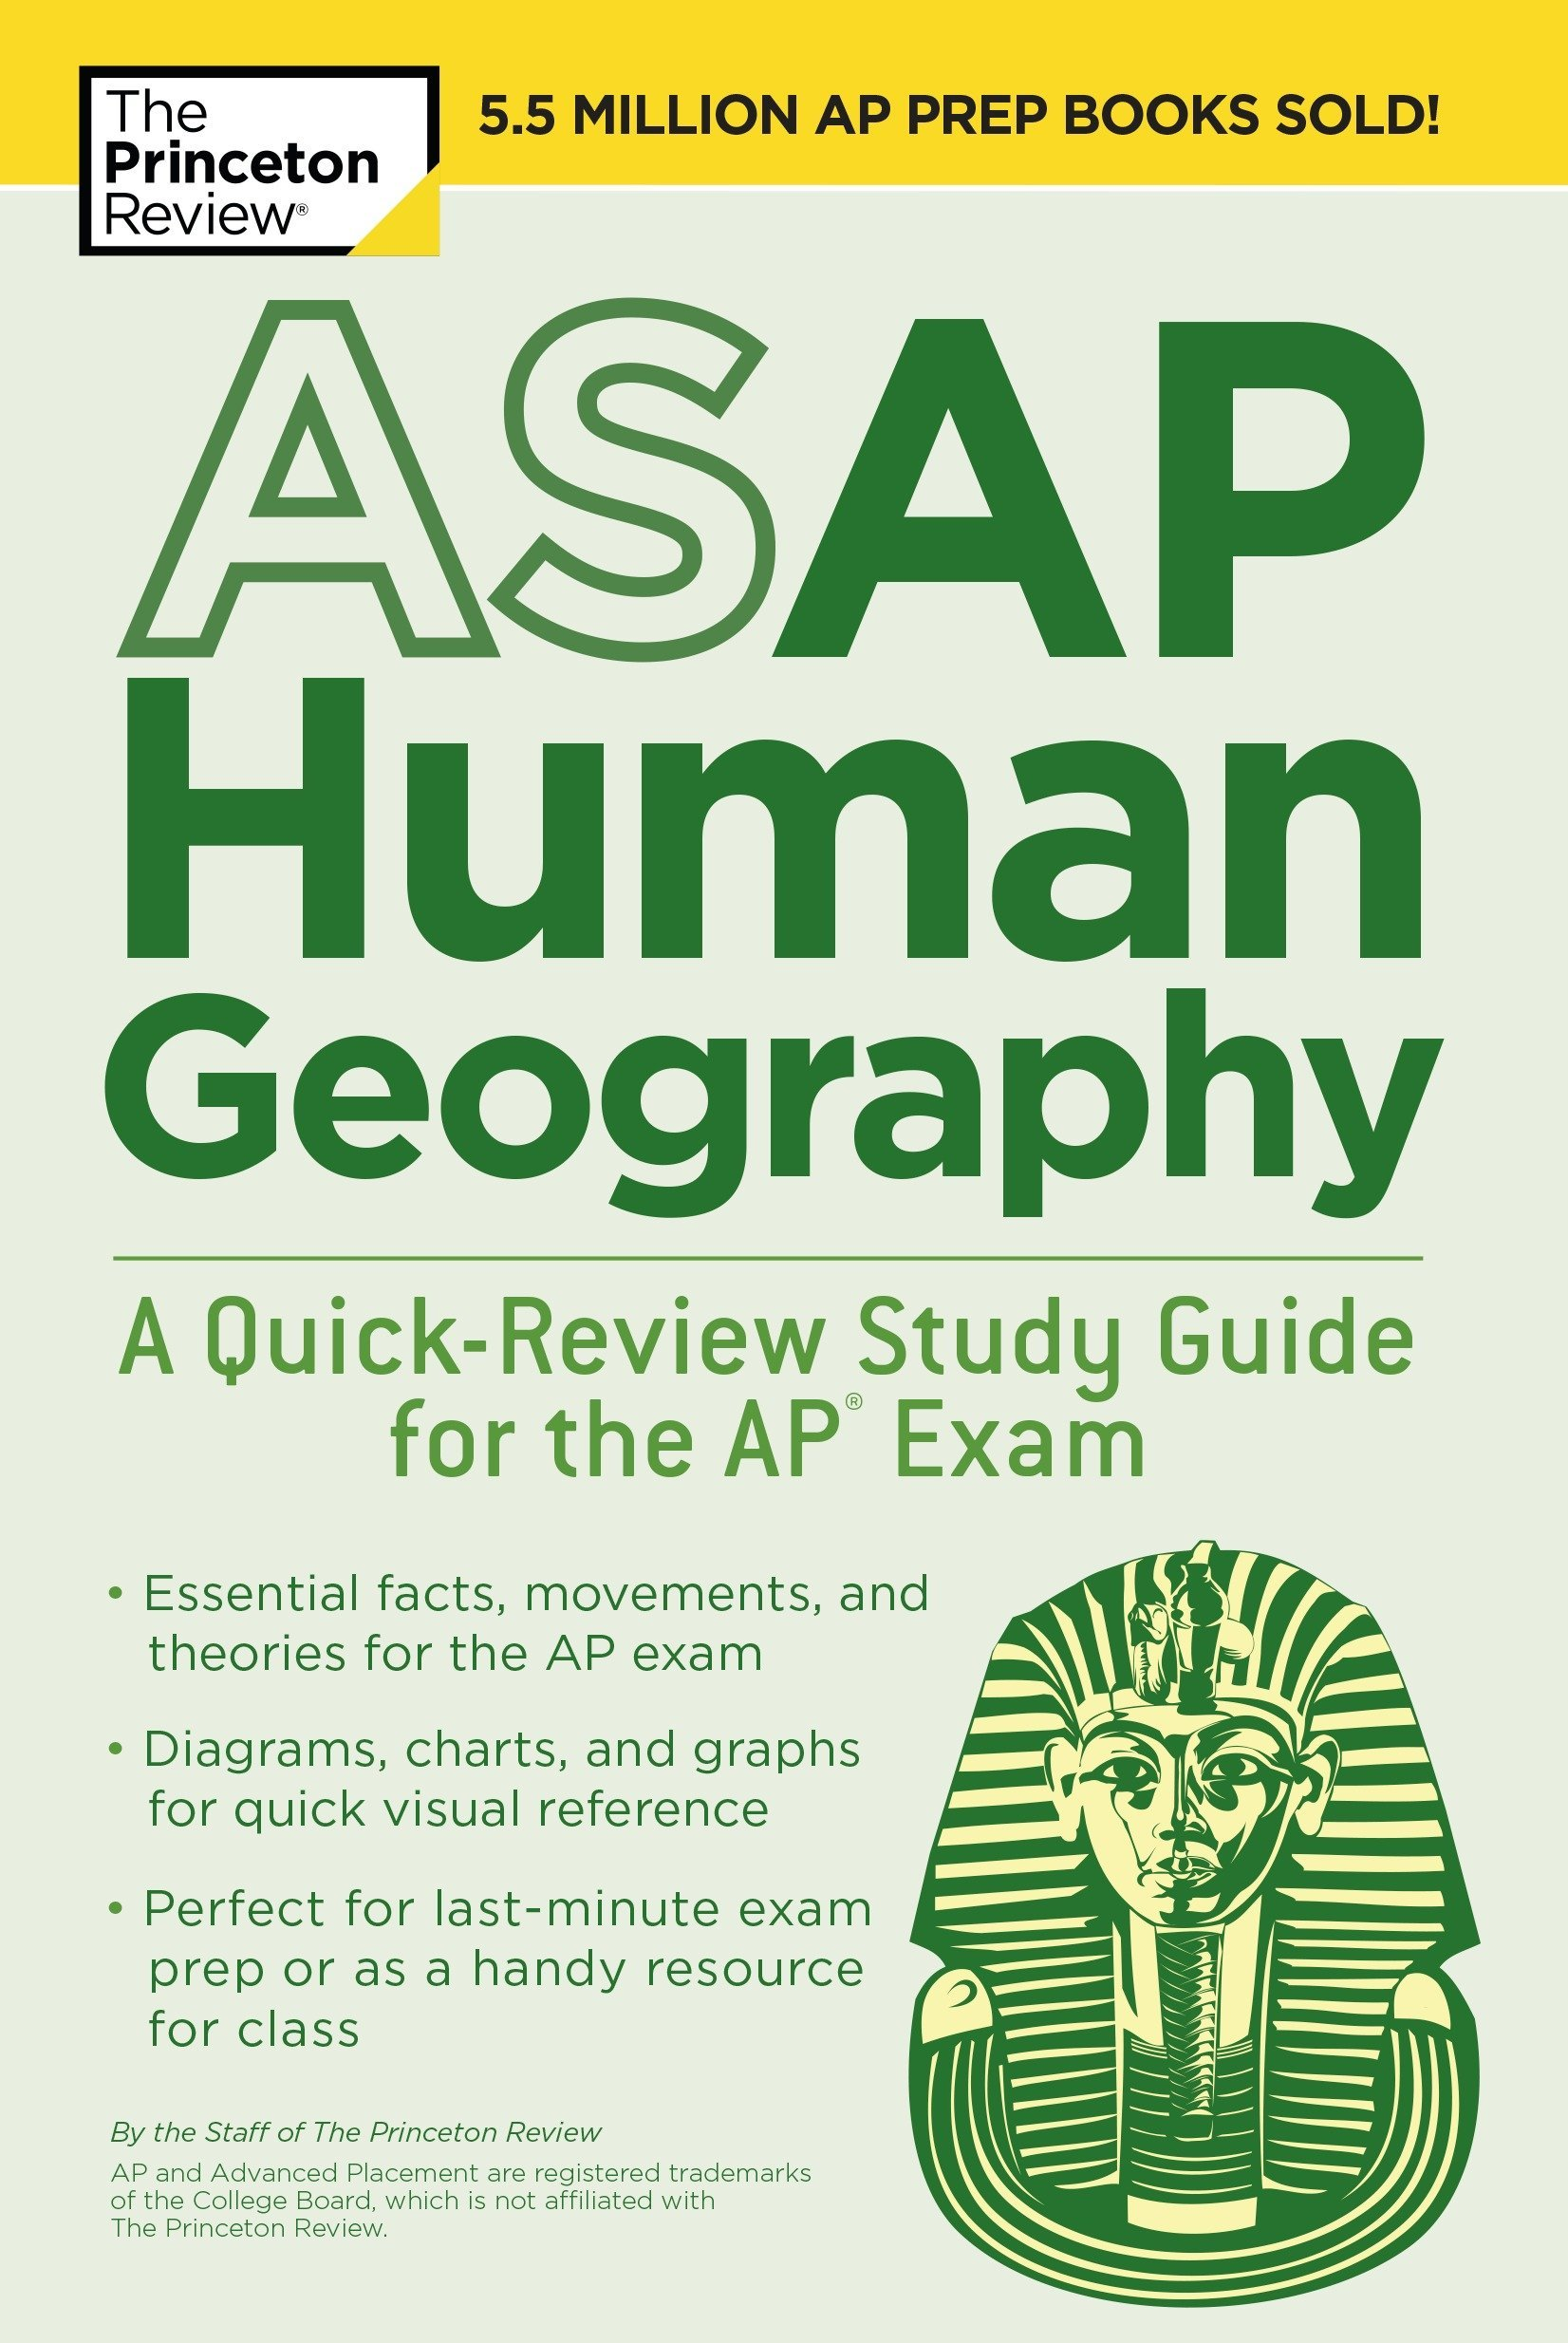 Amazon.com: ASAP Human Geography: A Quick-Review Study Guide for the AP Exam  (College Test Preparation) (9781524757656): Princeton Review: Books